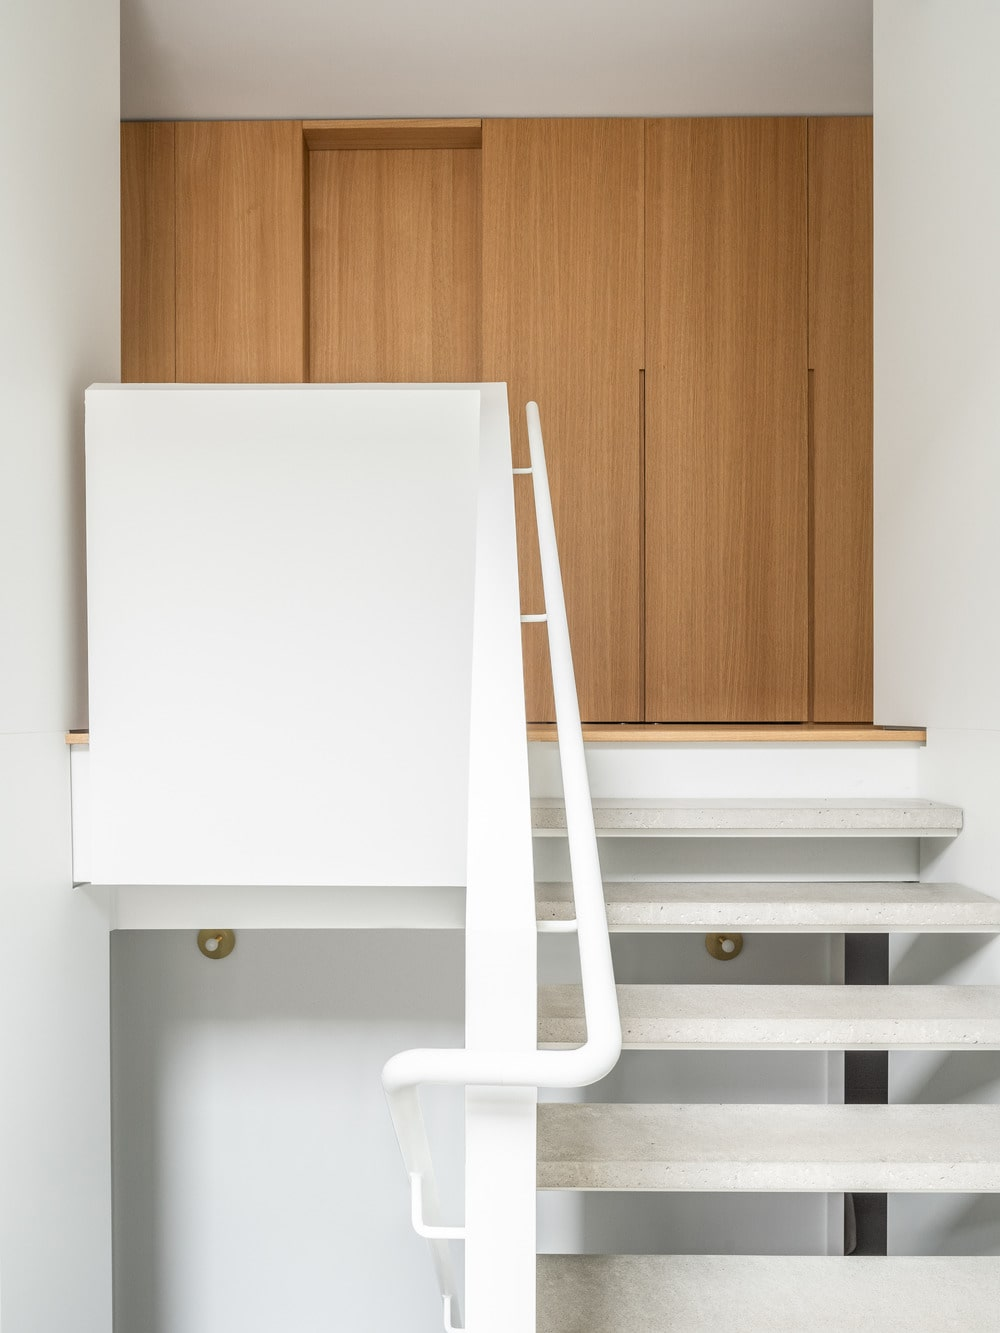 The steps of the stairs are supported by the banisters and walls on its sides.